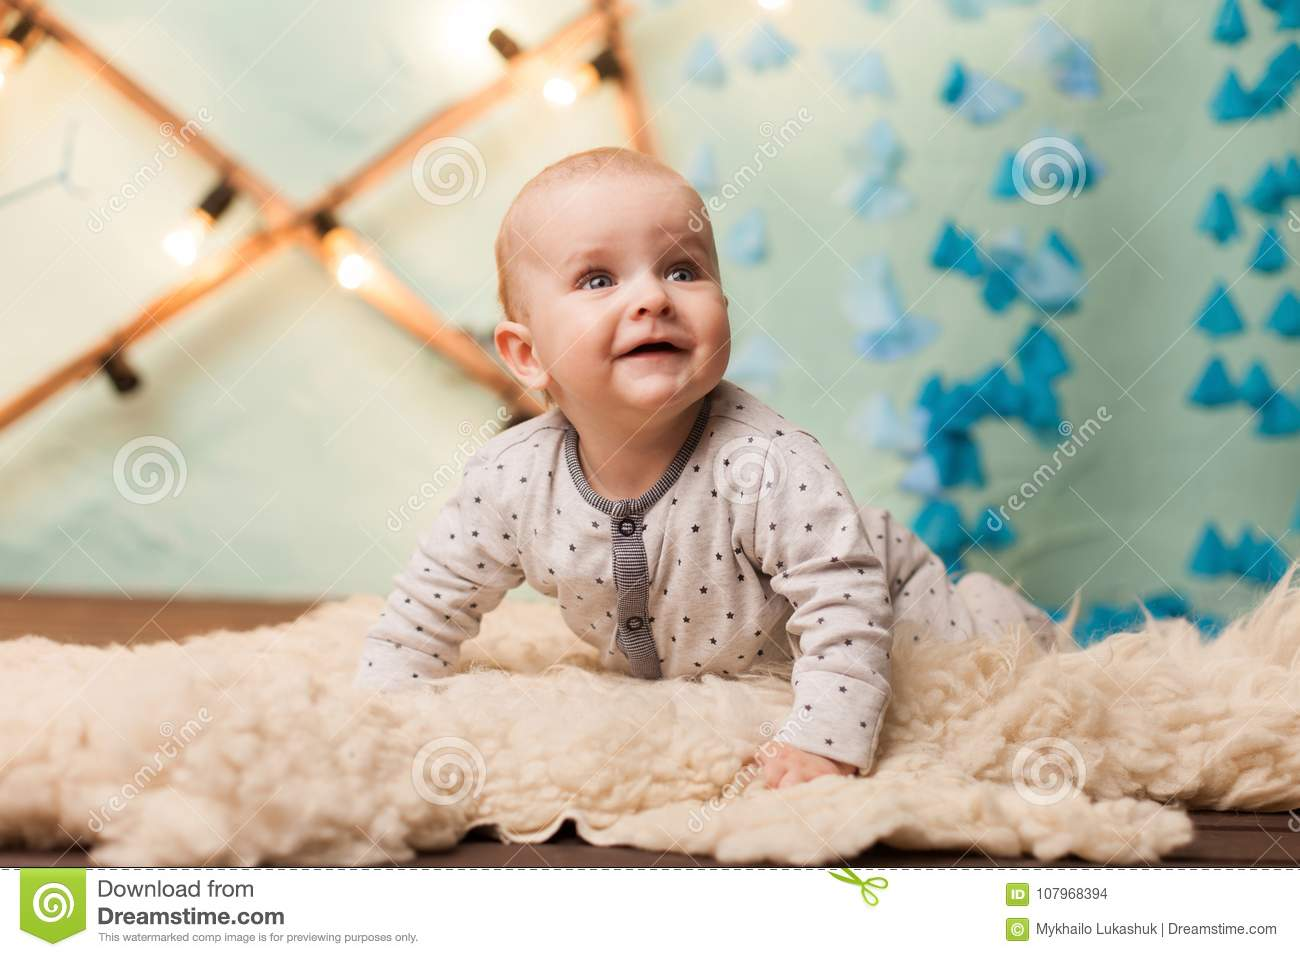 Baby Boy On Carpet With Decorations In Studio Stock Photo Image Of People Child 107968394